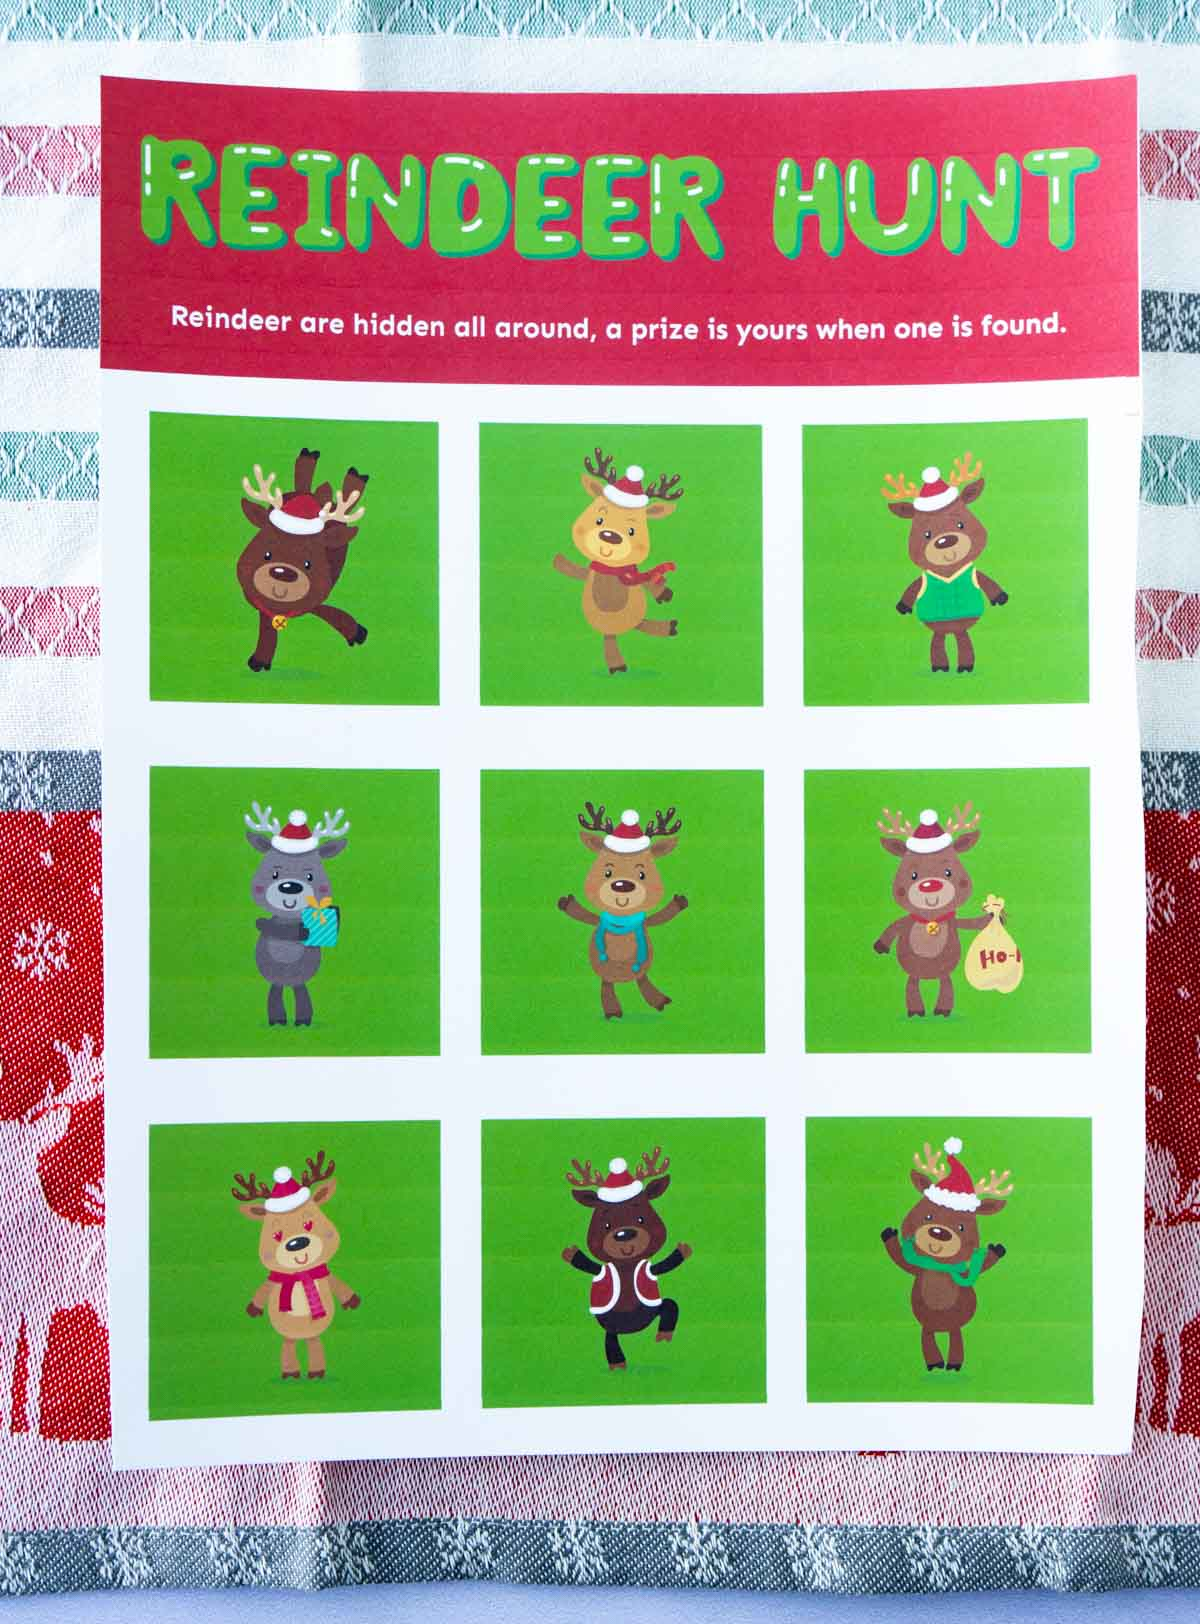 Reindeer hunt card on a reindeer towel